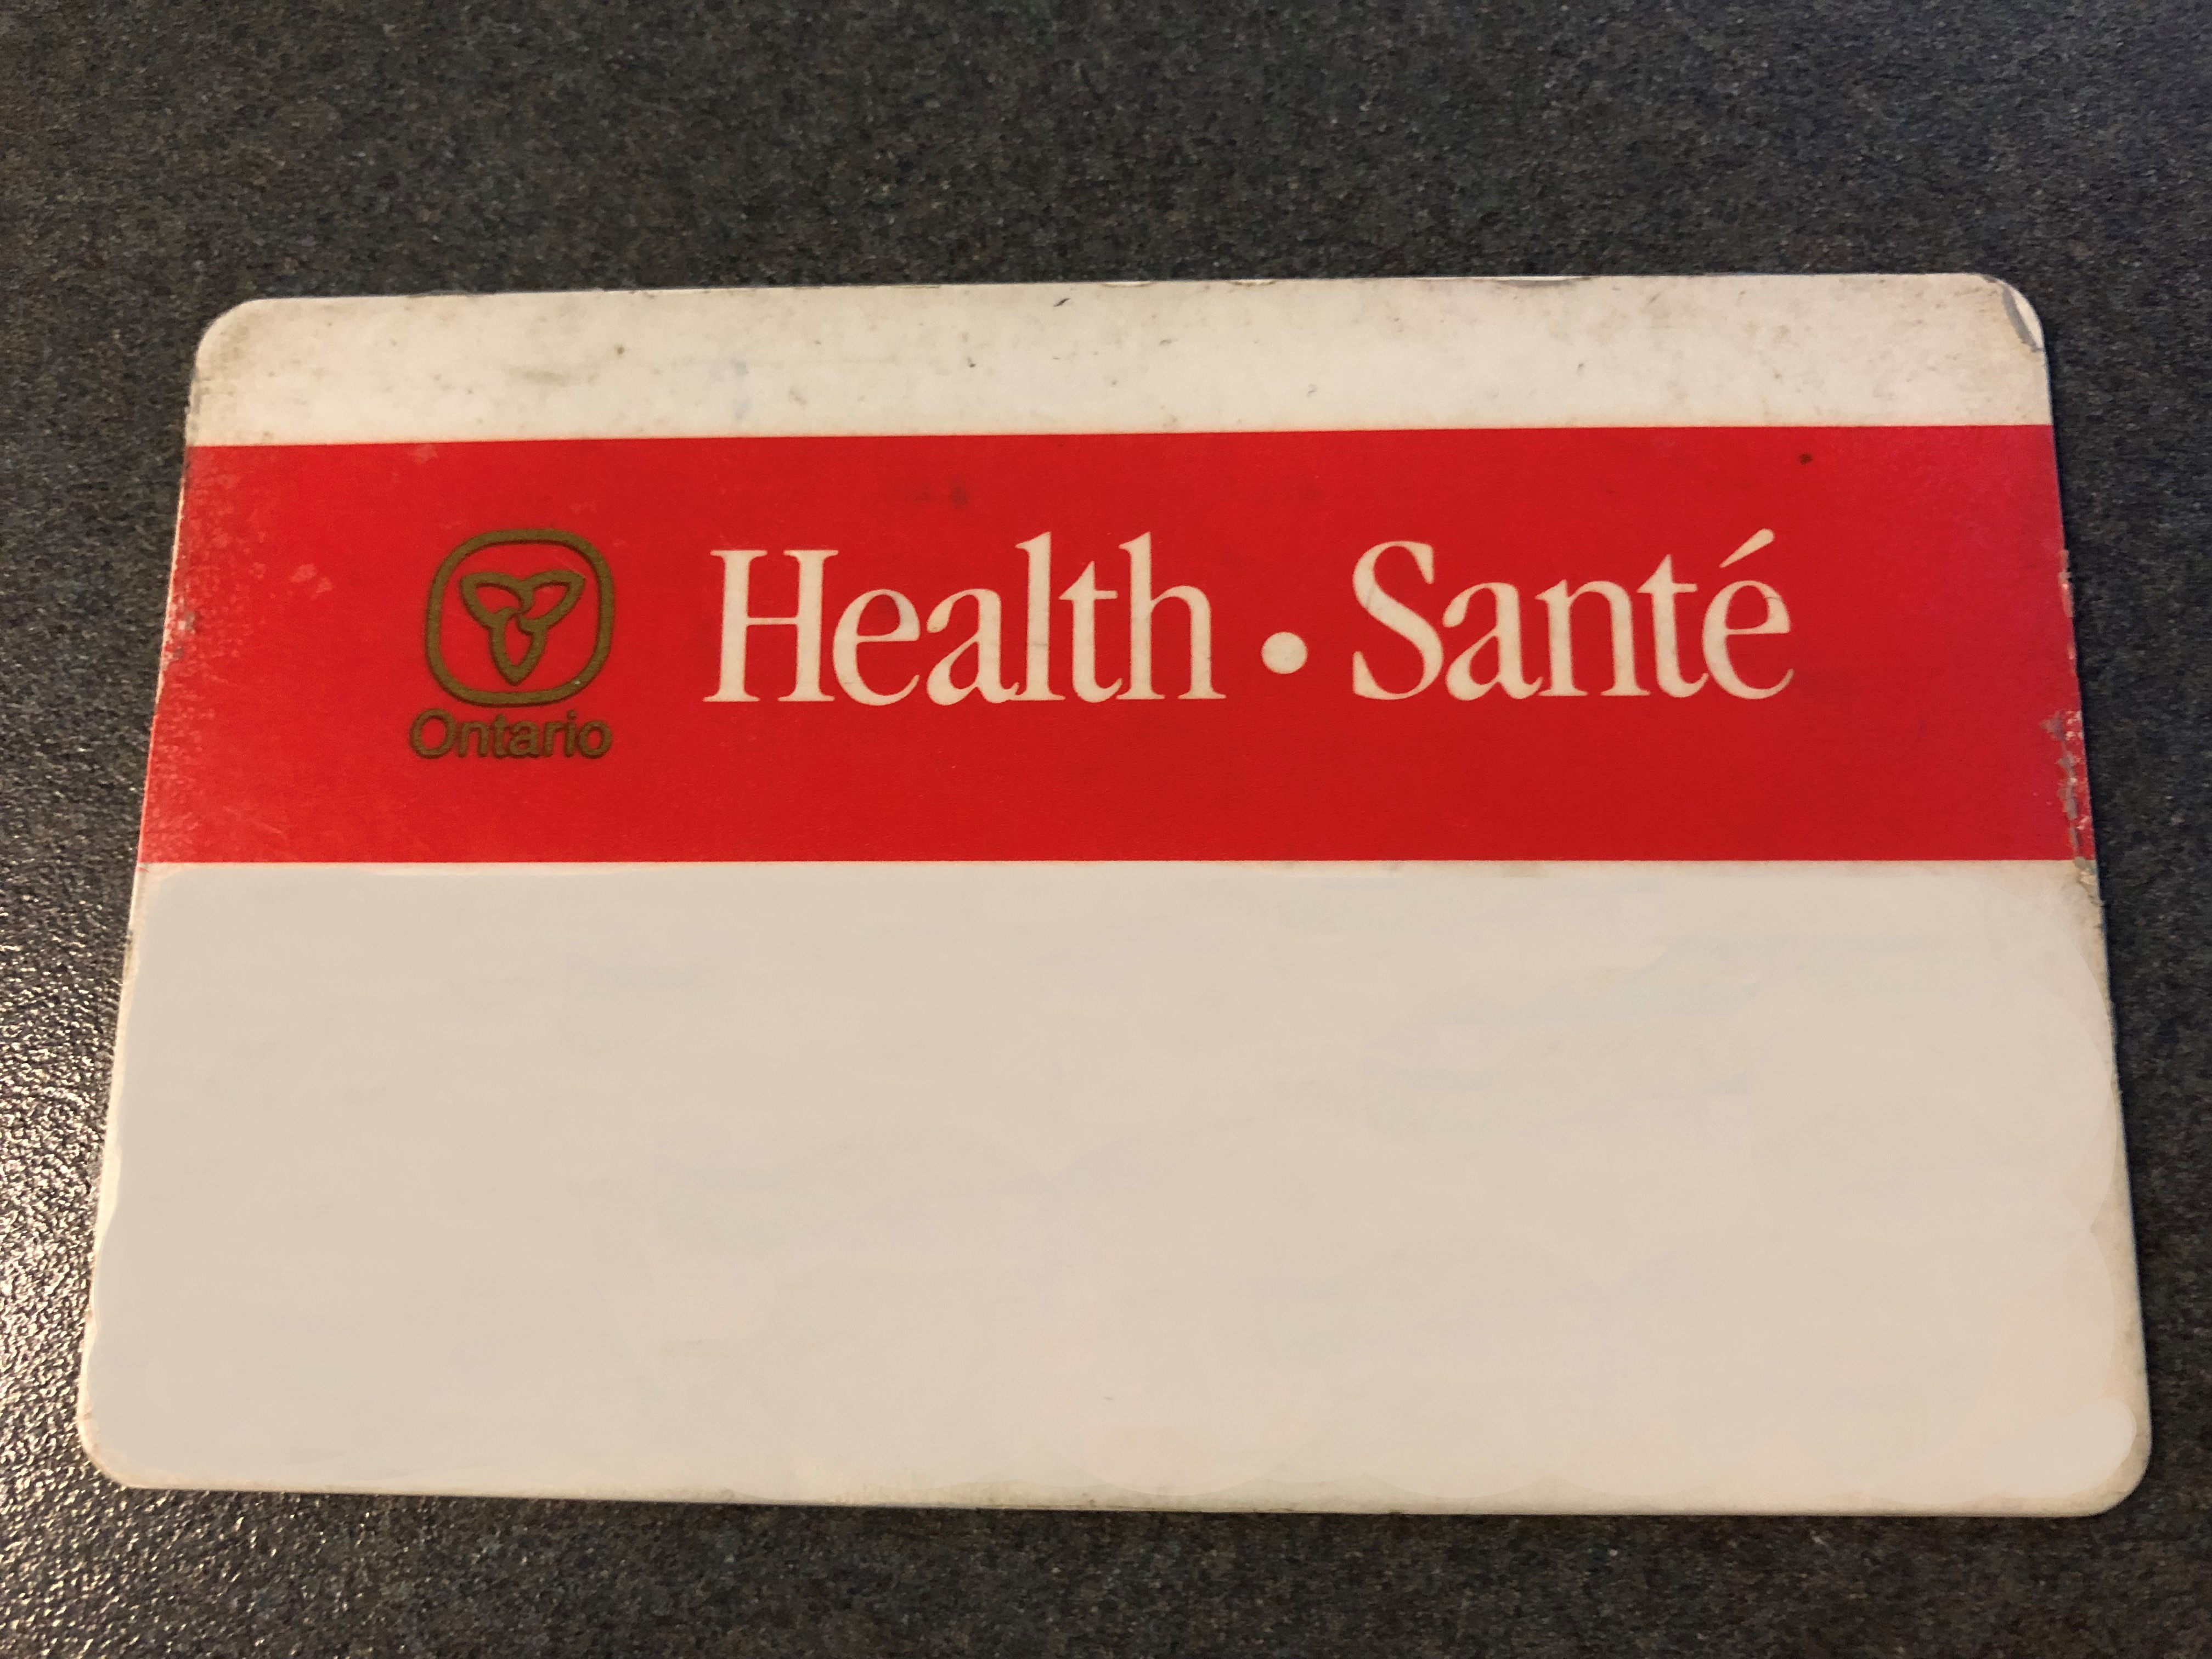 Province Working On Firm Date To Cancel Red And White Health Cards